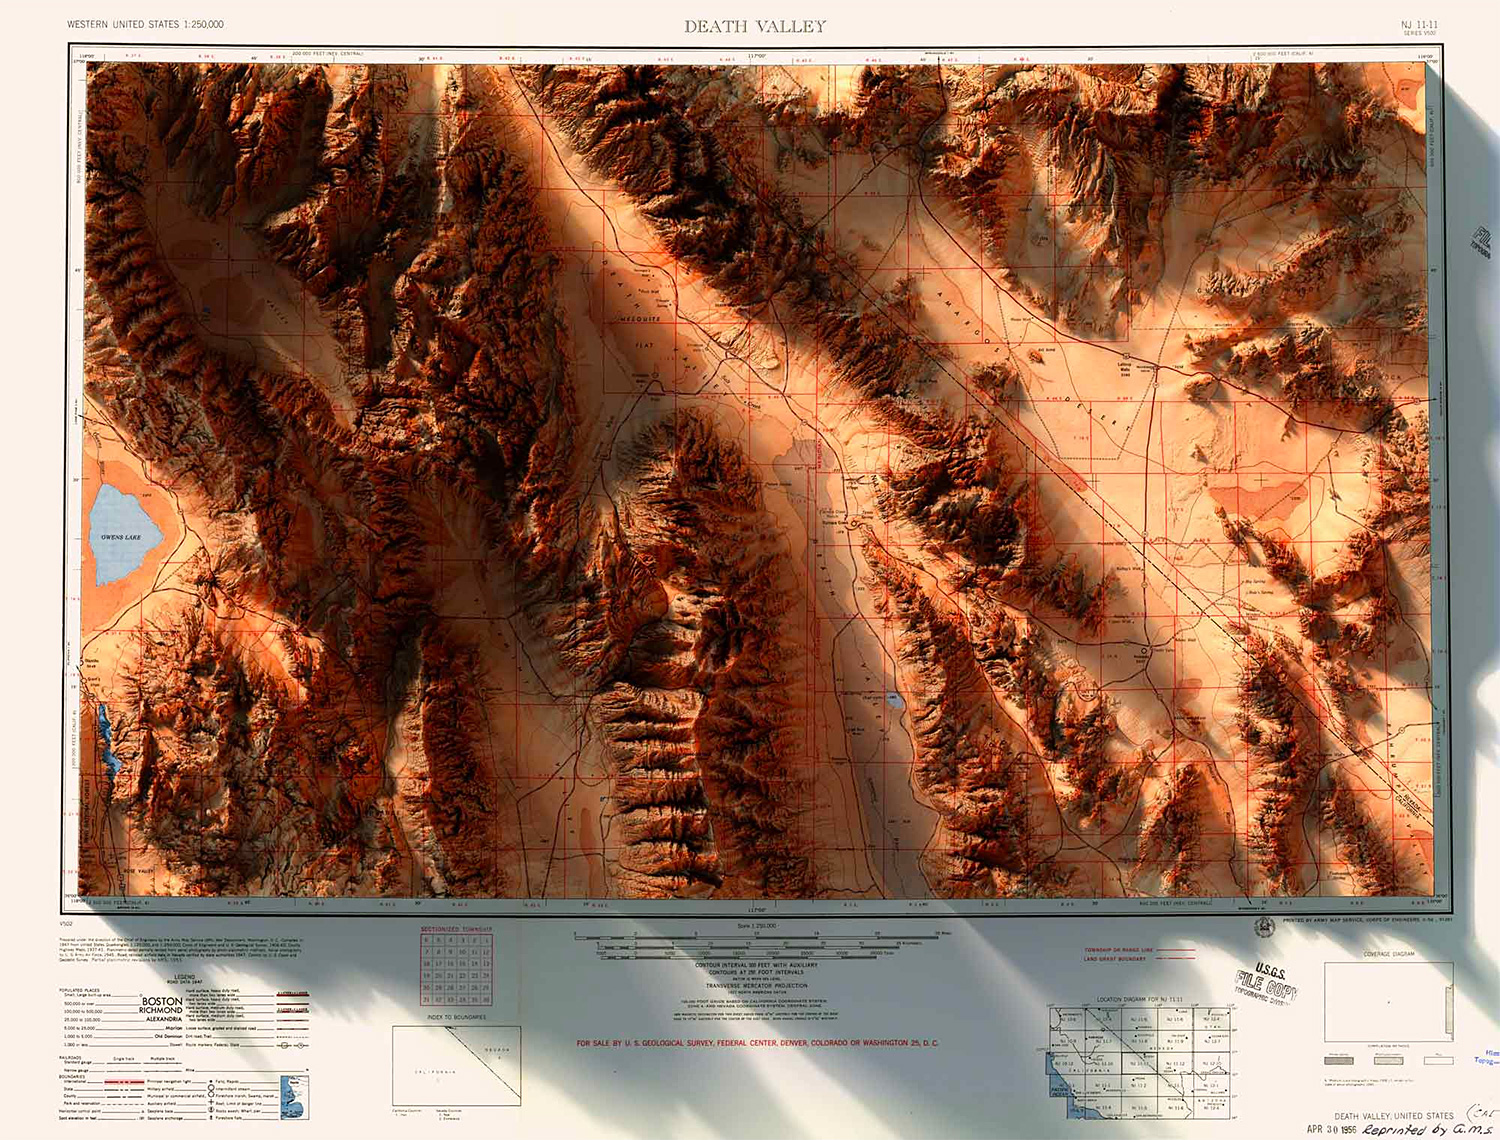 3-D Data & Historical Maps Combine To Create Amazing Images at werd.com